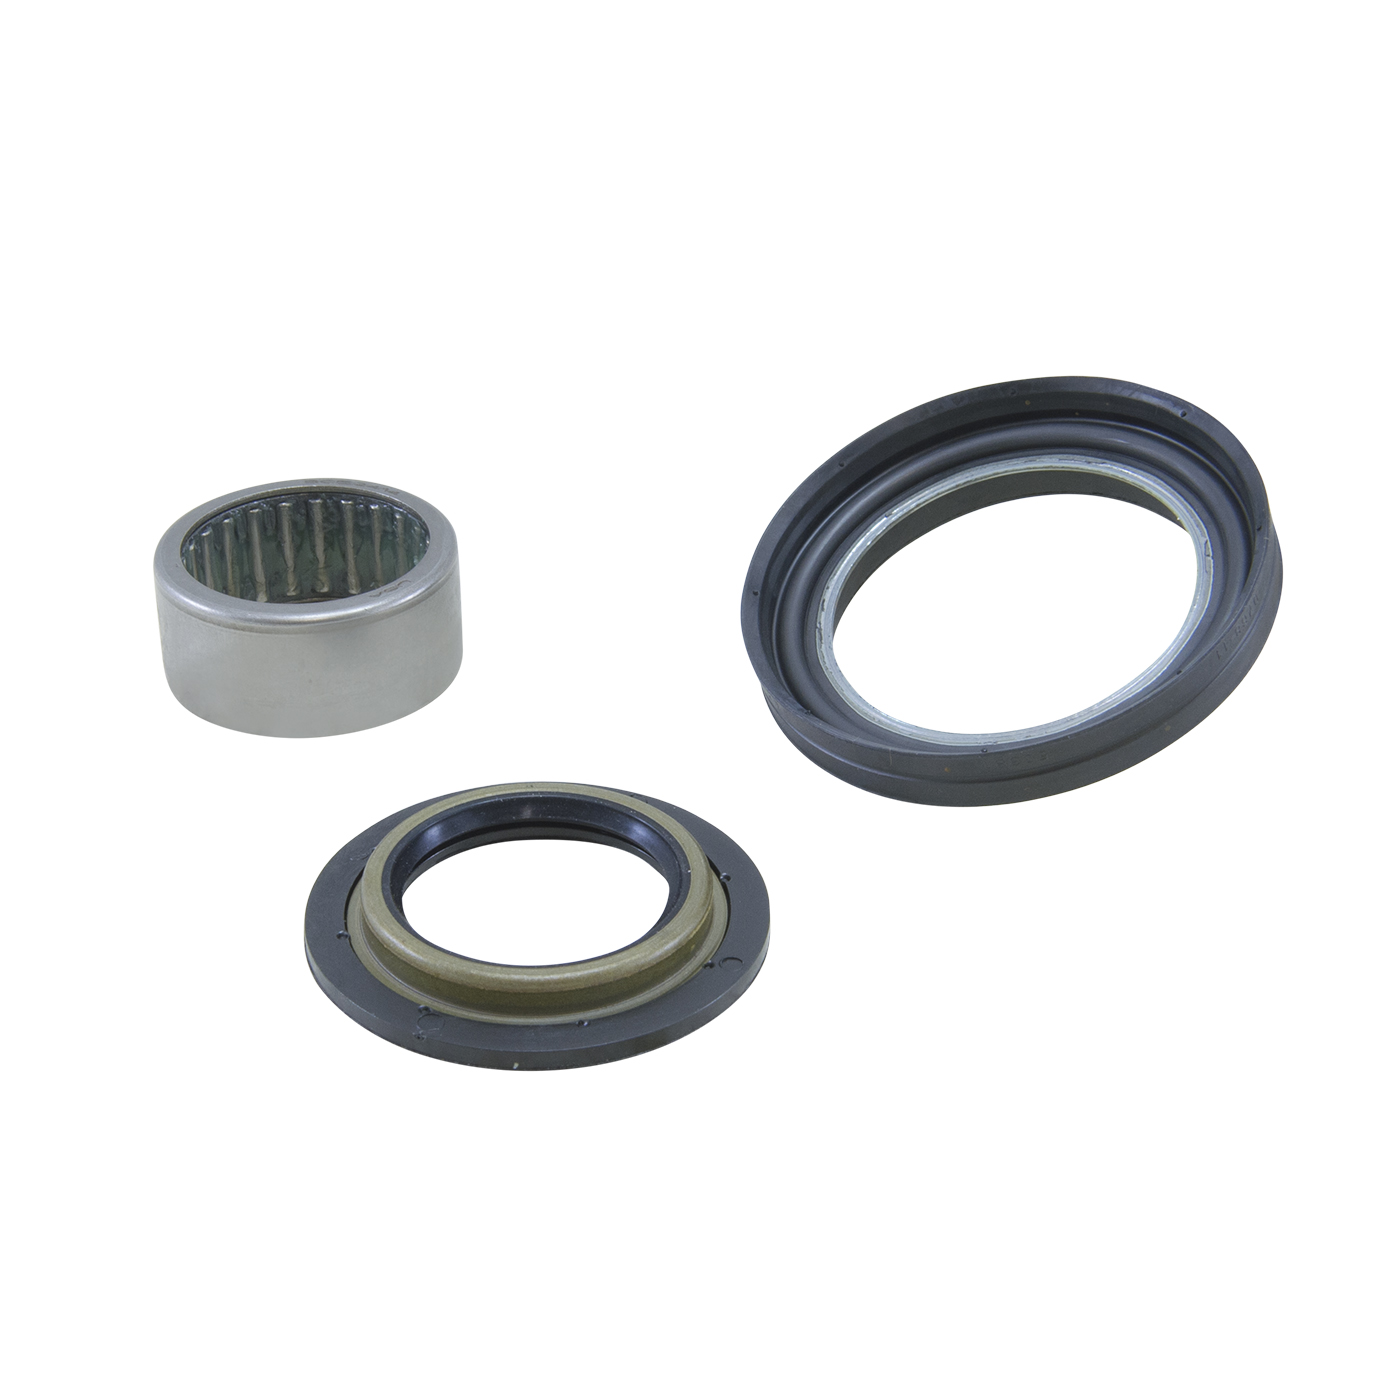 YSPSP-028 - Spindle bearing & seal kit for '78-'99 Ford Dana 60